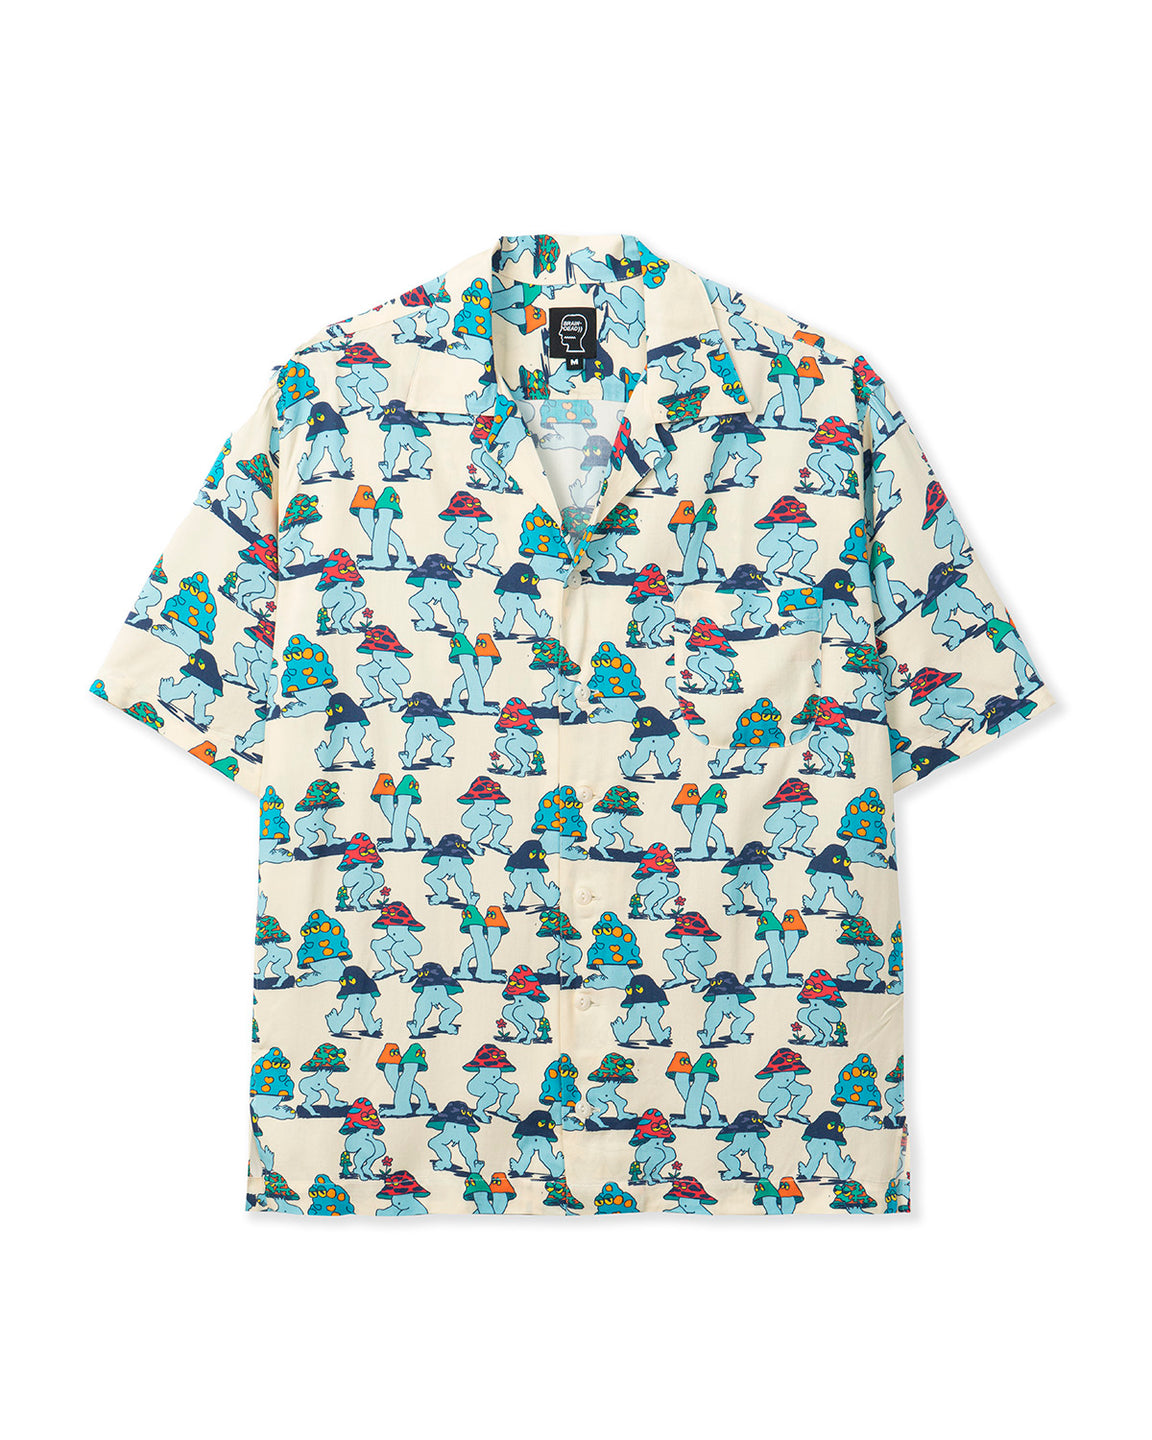 Mushroom Short Sleeve Hawaiian Shirt - Natural